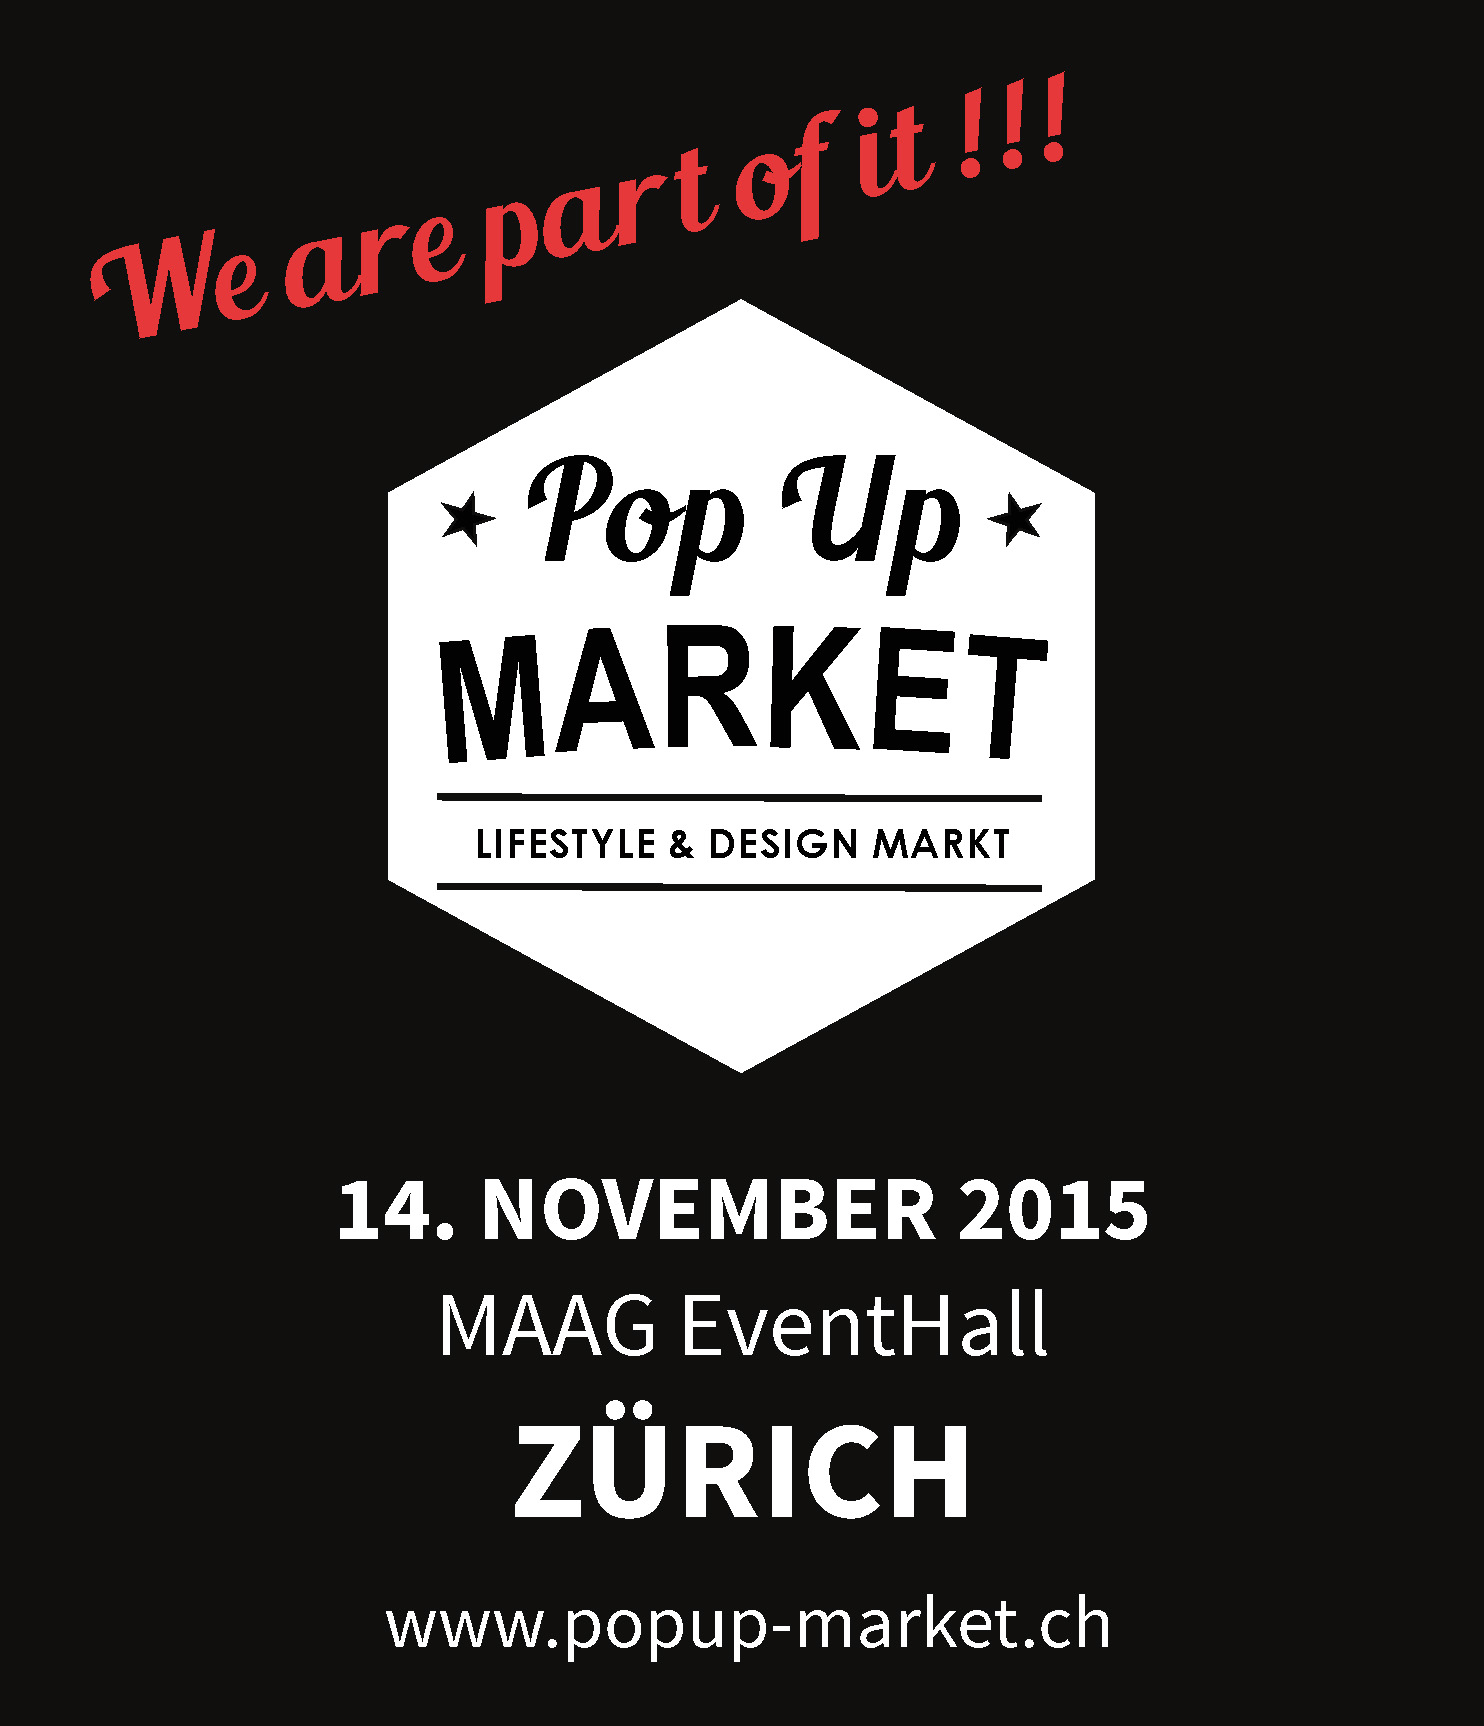 Pop Up Market 14.11.2015